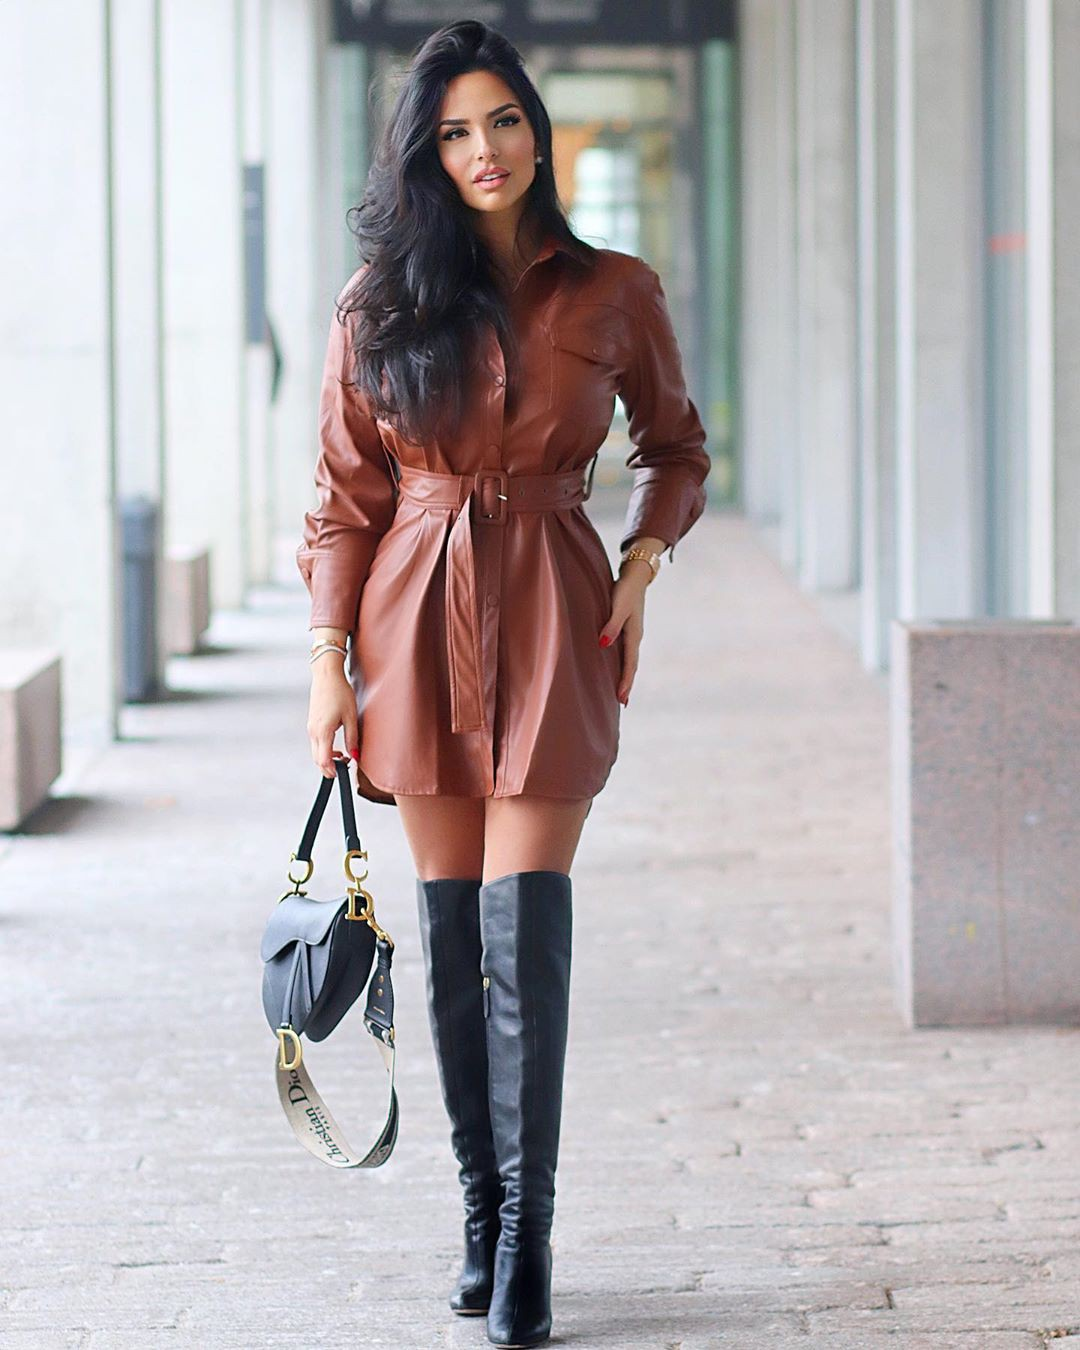 brown clothing ideas with knee-high boot, boot, apparel ideas